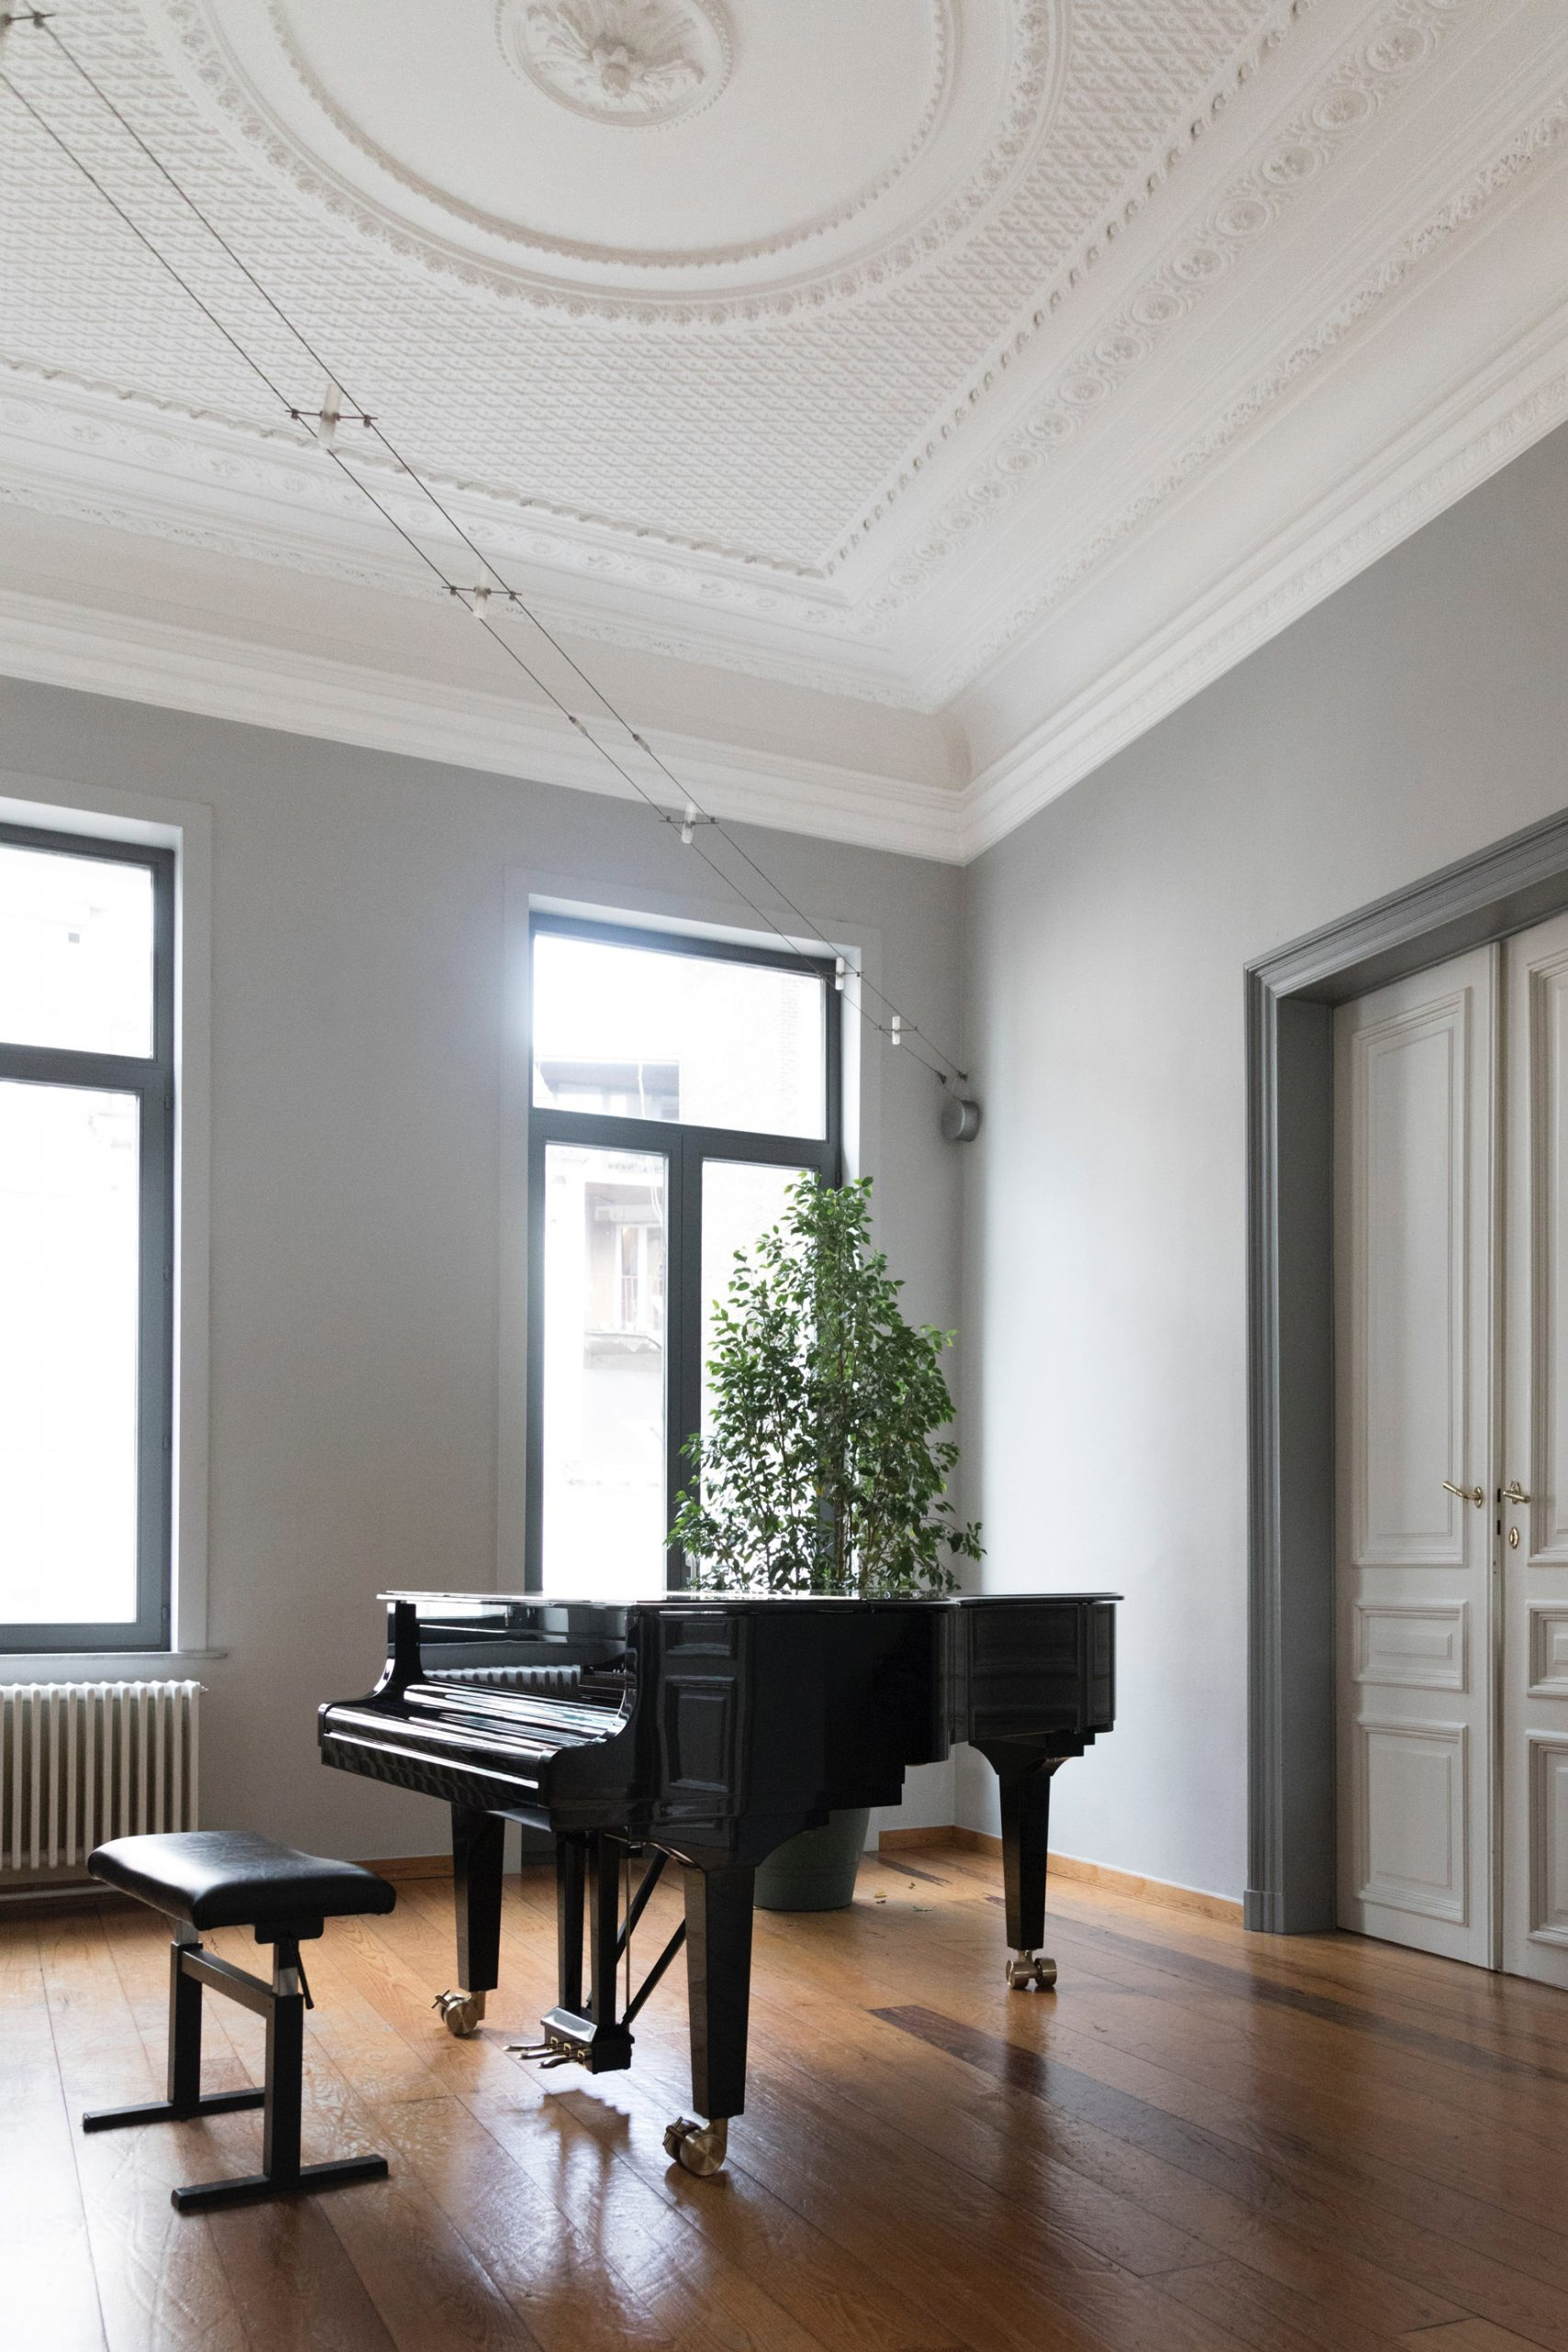 Piano cleaning and tuning